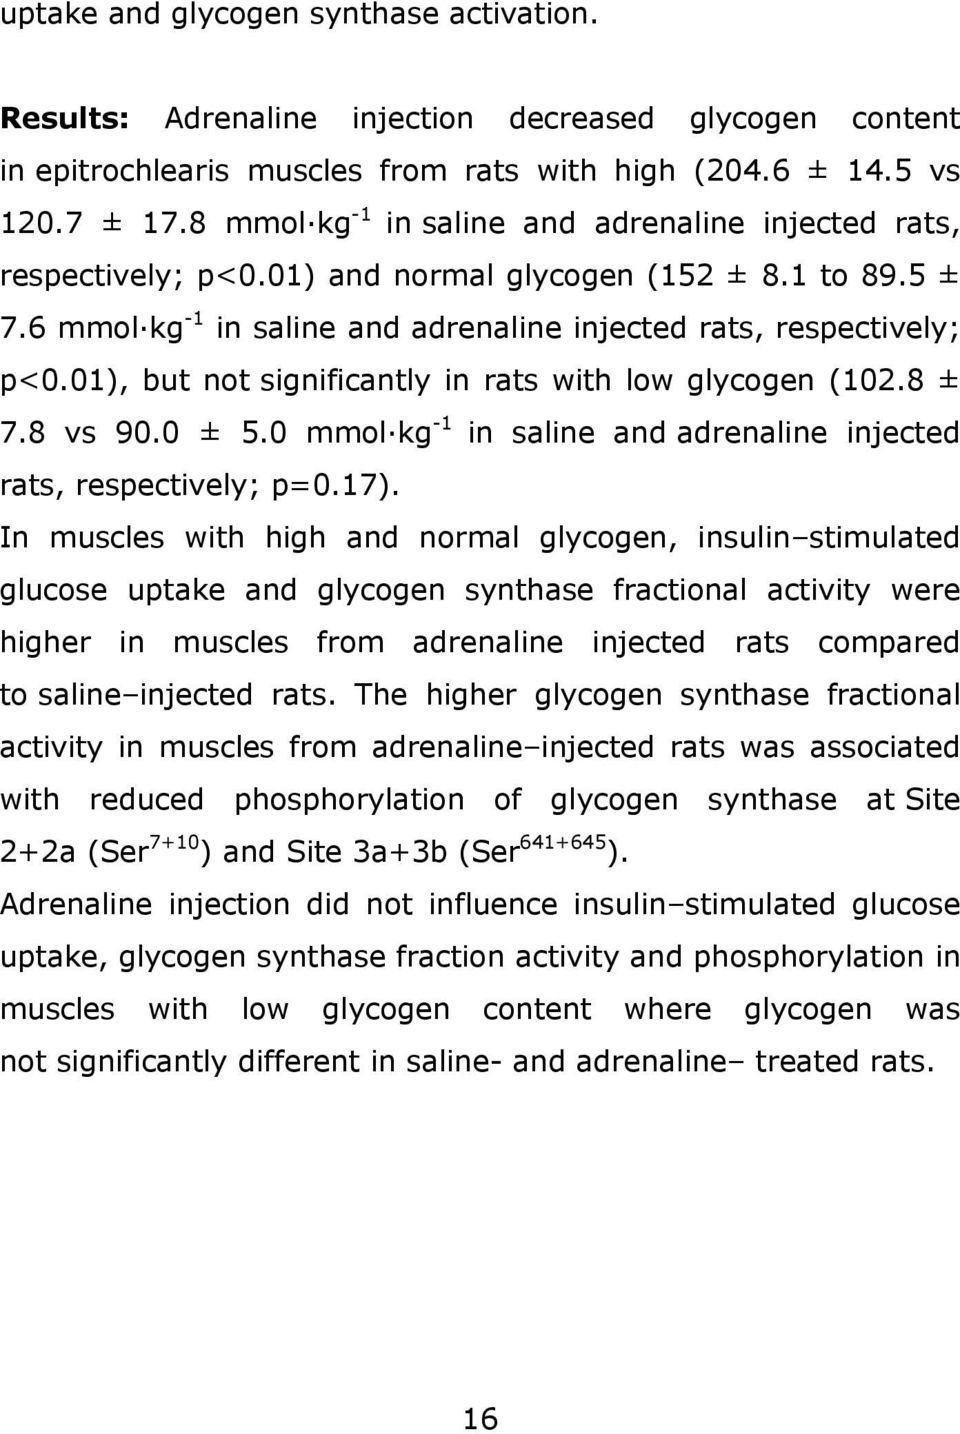 01), but not significantly in rats with low glycogen (102.8 ± 7.8 vs 90.0 ± 5.0 mmol kg -1 in saline and adrenaline injected rats, respectively; p=0.17).